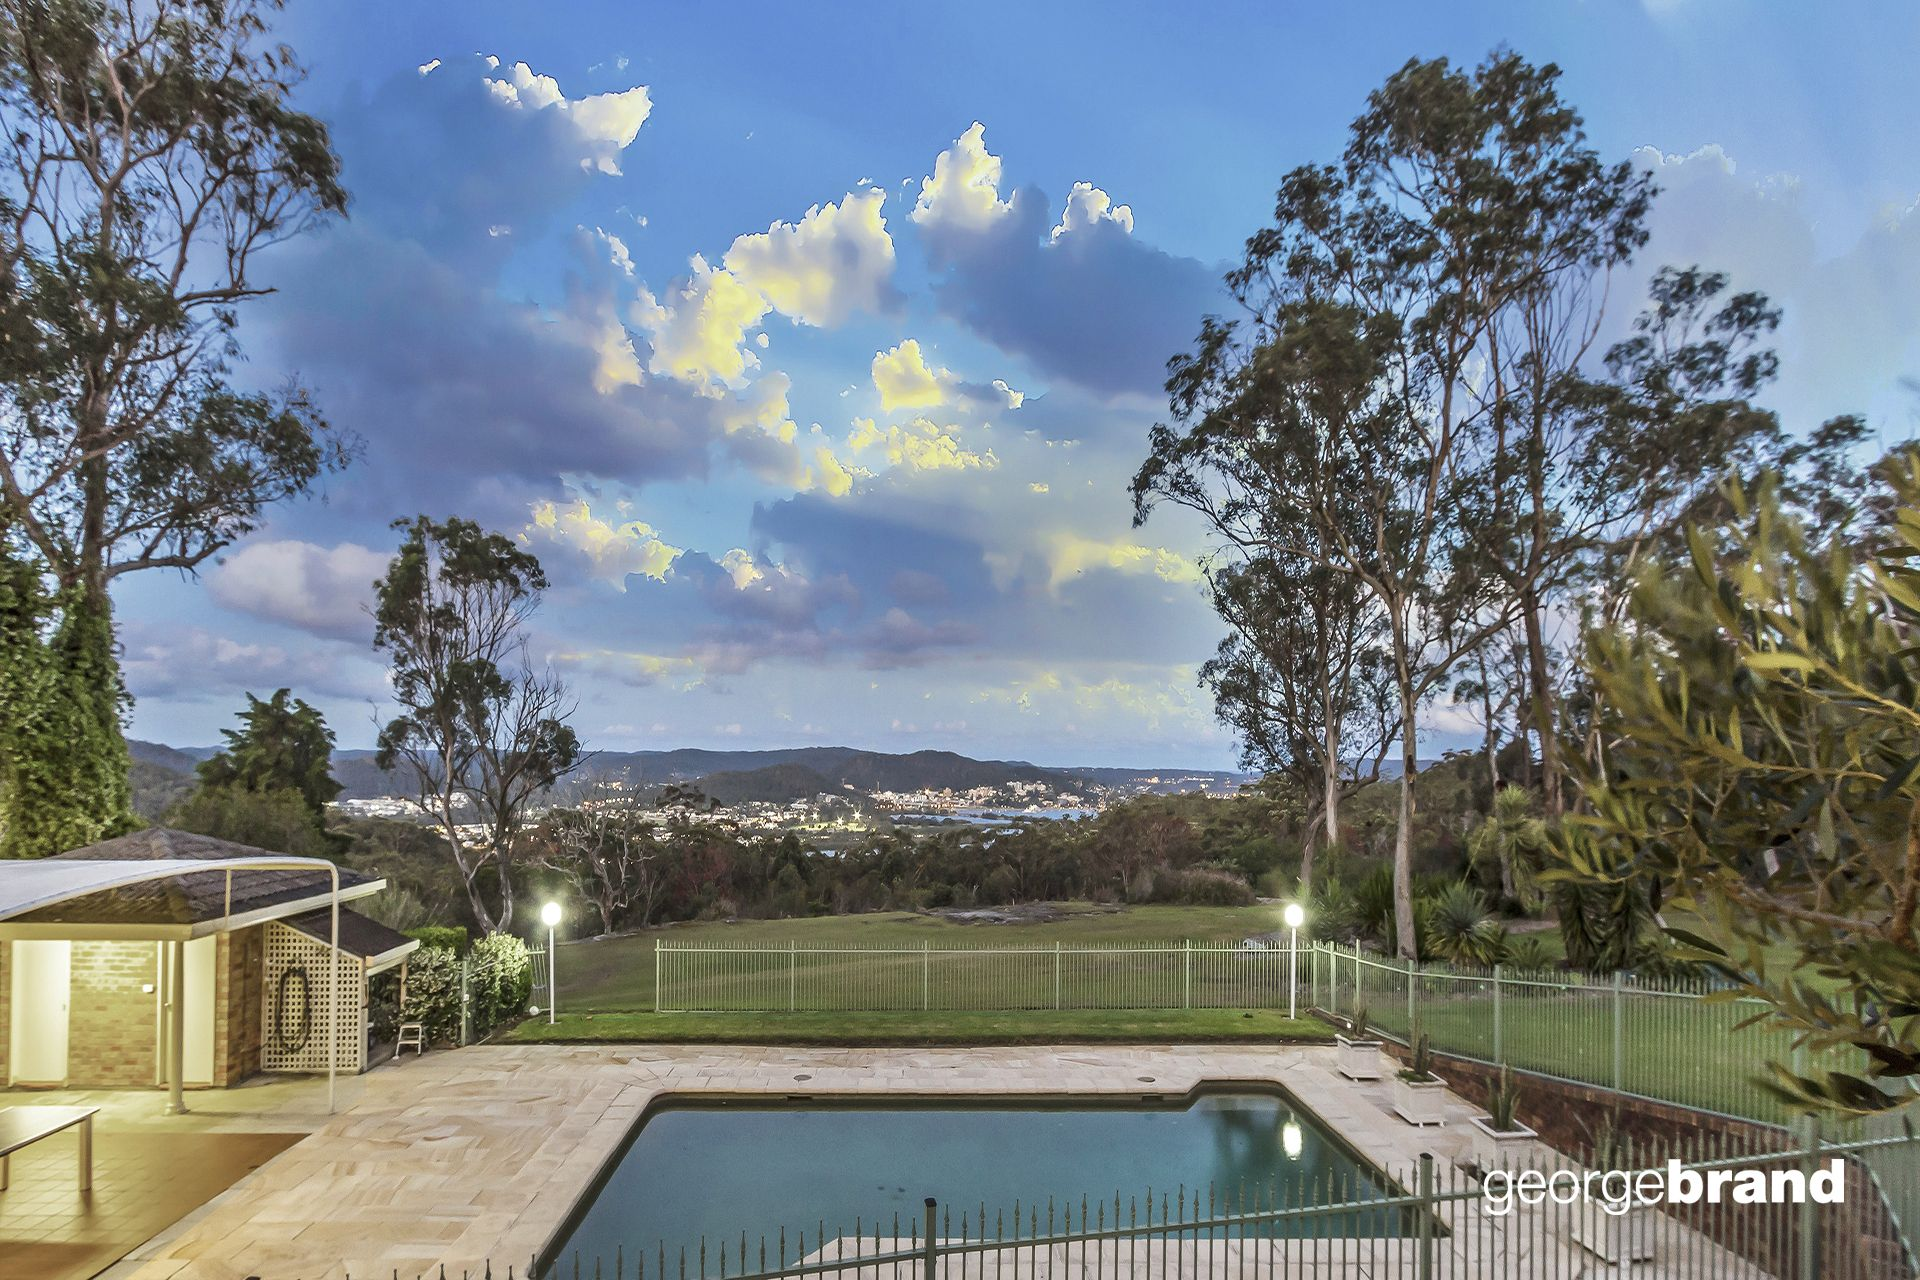 Kariong Real Estate: AMAZING FAMILY RETREAT ON 1.2 HA!